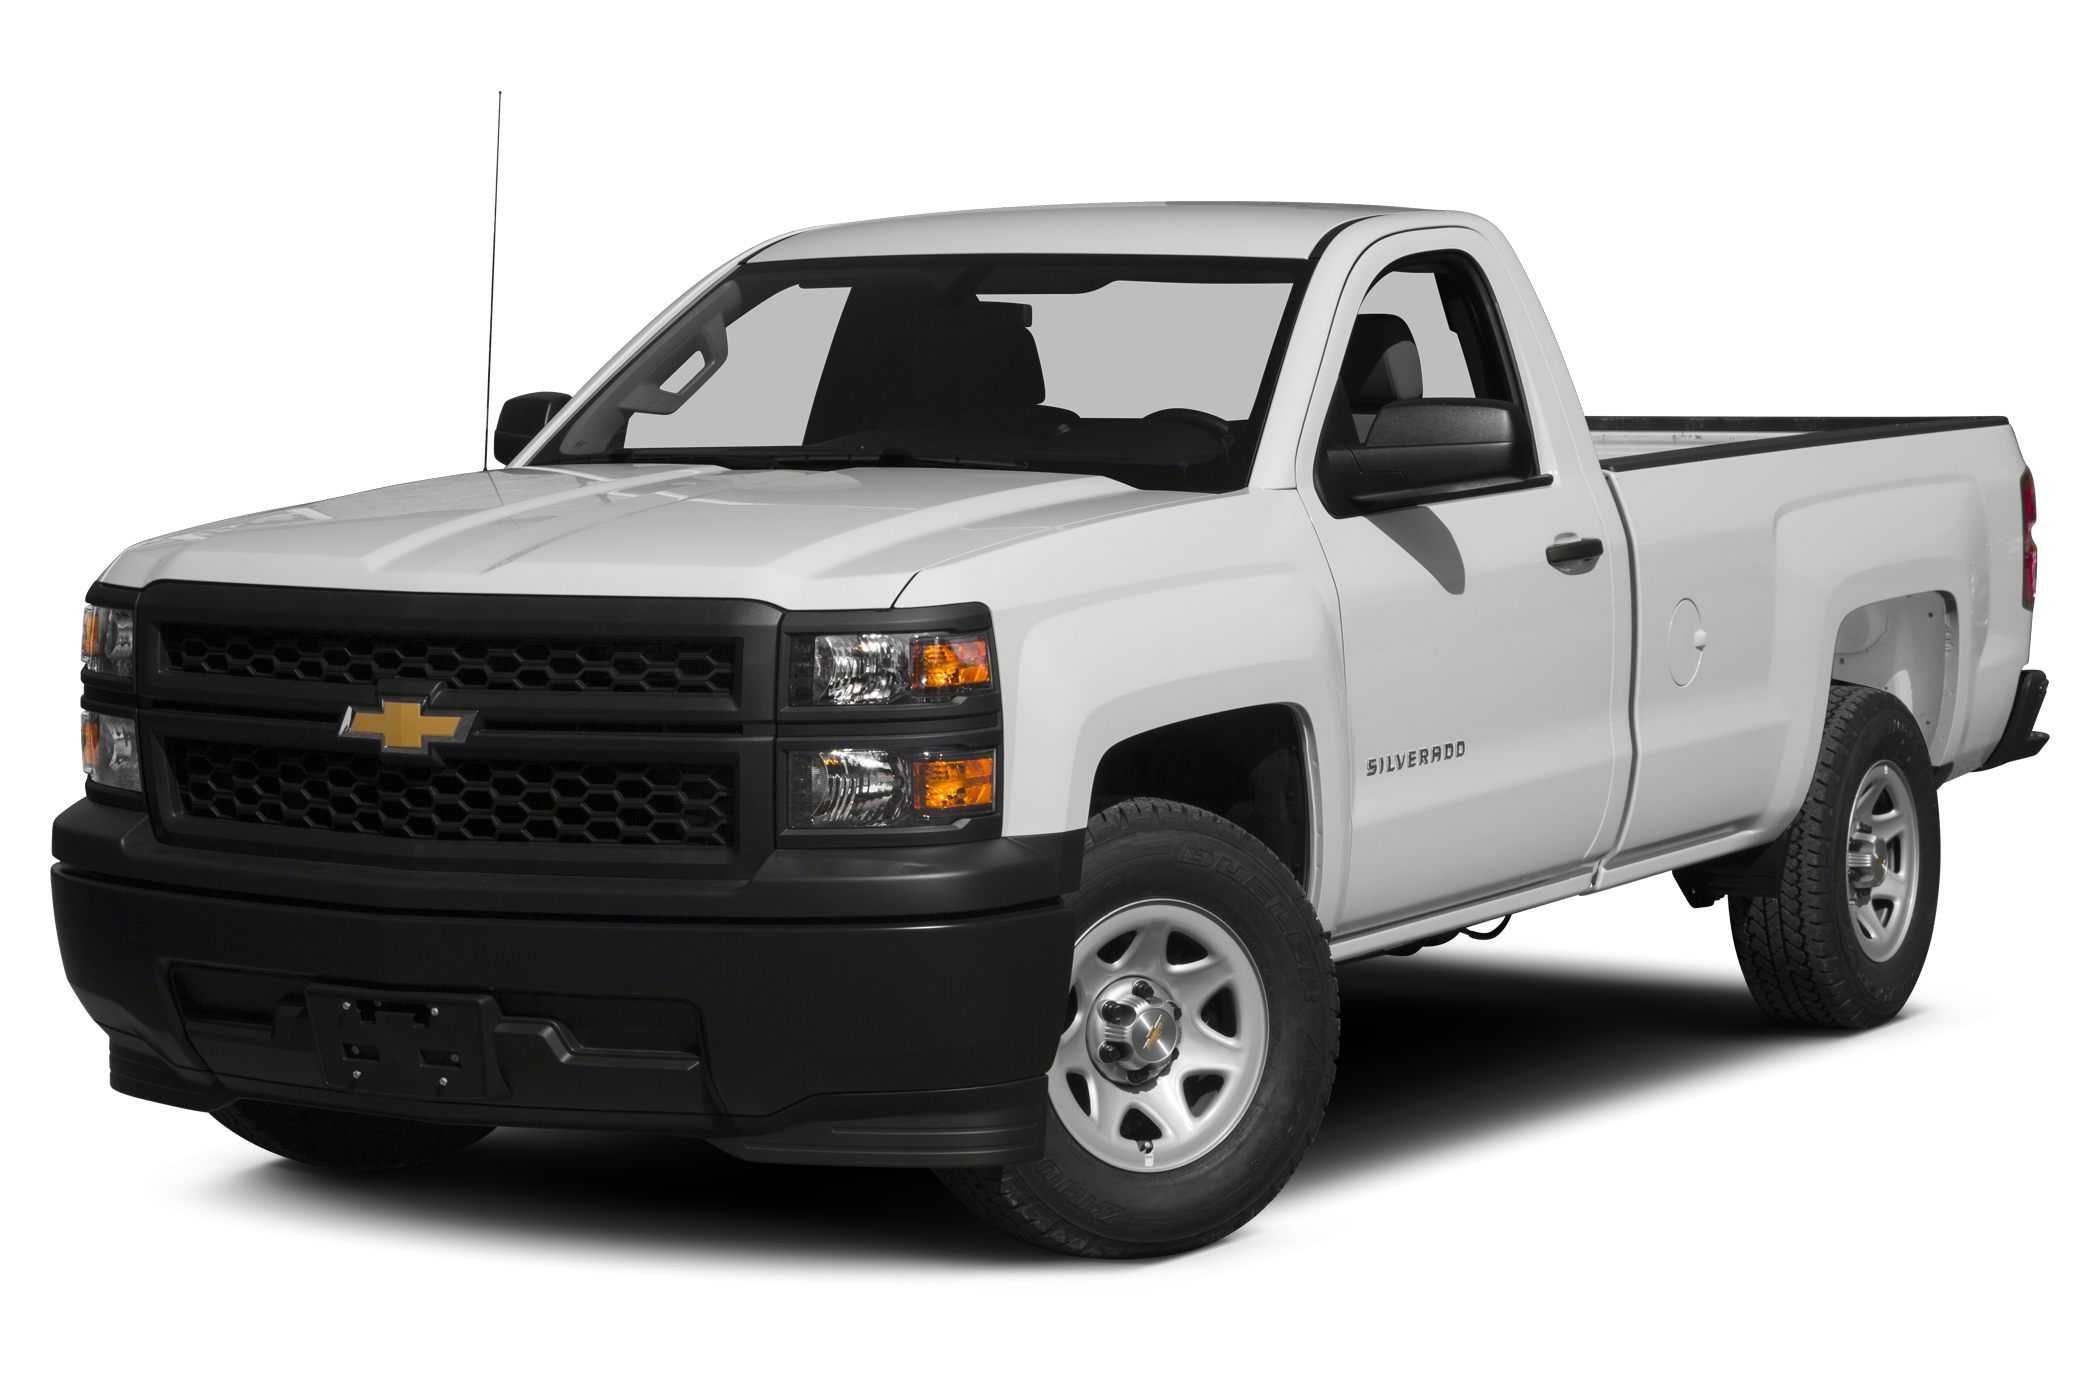 2014 Chevrolet Silverado 1500 Work Truck 1WT Crew Cab Pickup for sale in Tifton for $34,845 with 0 miles